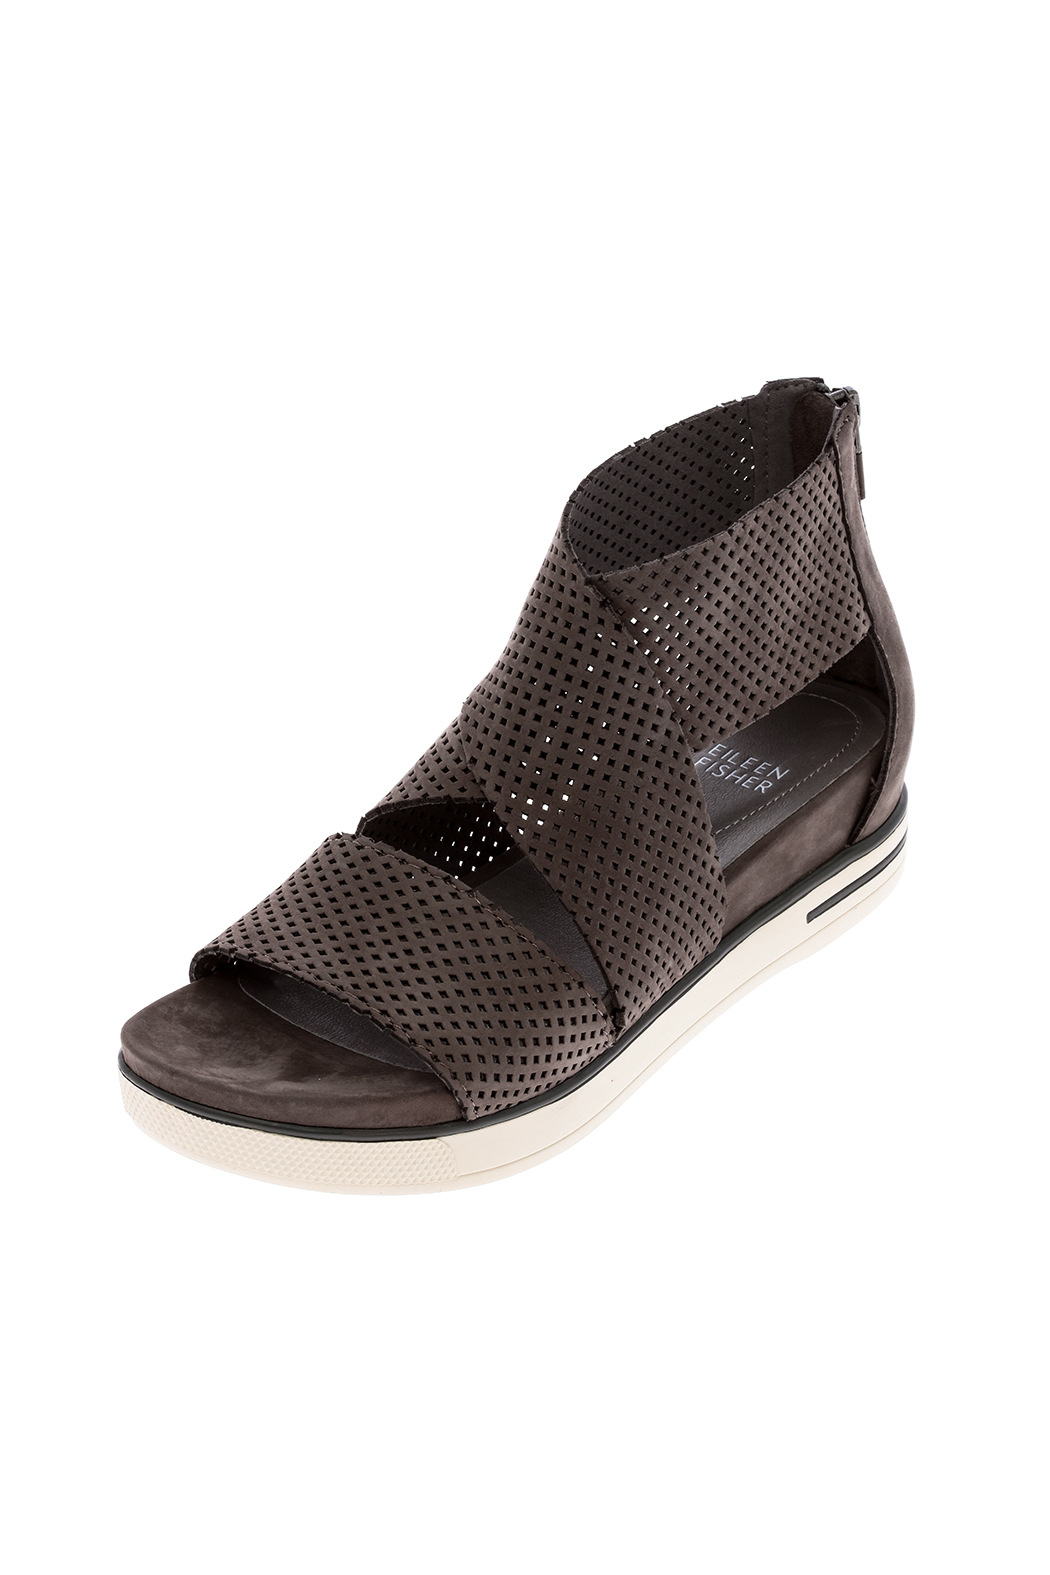 Eileen Fisher Graphite Sport Sandal - Back Cropped Image